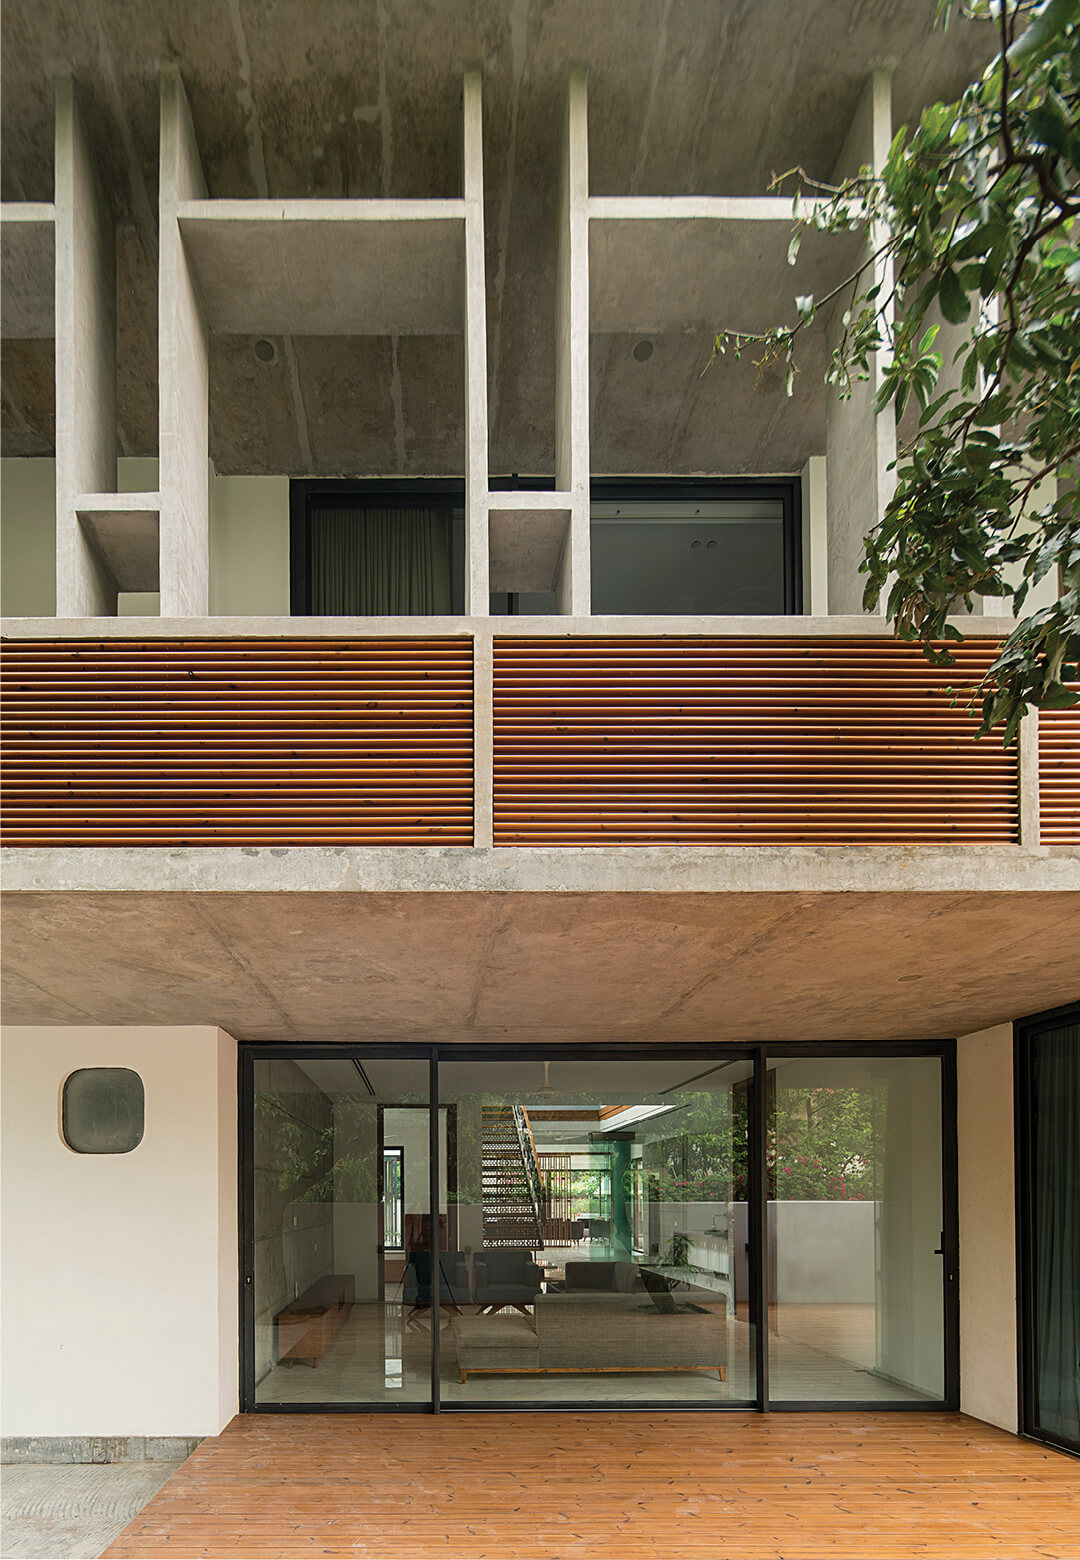 Exteriors of House 1065 in Chandigarh by Charged Voids | Charged Voids | Chandigarh, India | STIRworld